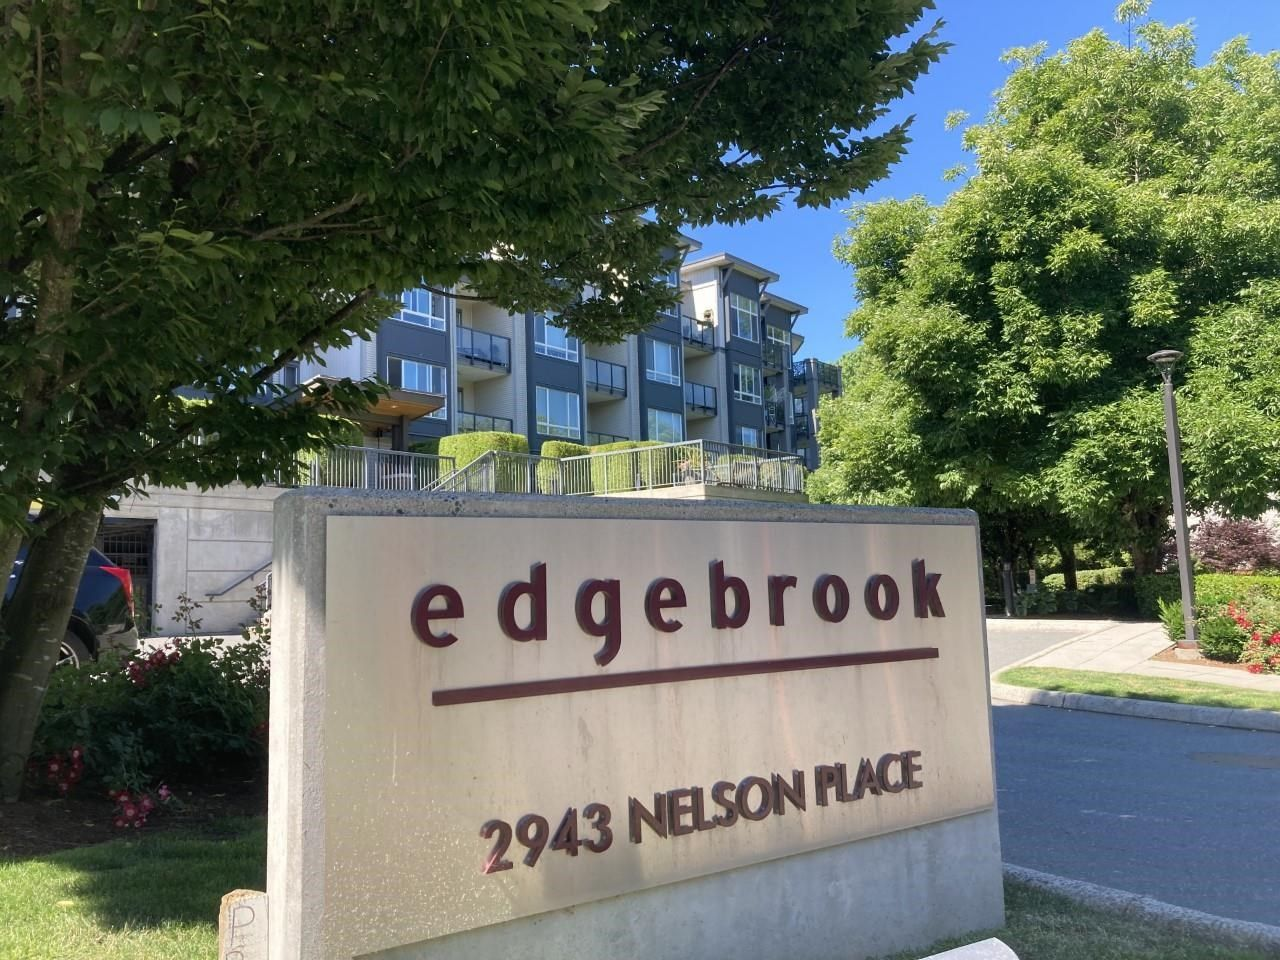 """Main Photo: 407 2943 NELSON Place in Abbotsford: Central Abbotsford Condo for sale in """"Edgebrook"""" : MLS®# R2595157"""